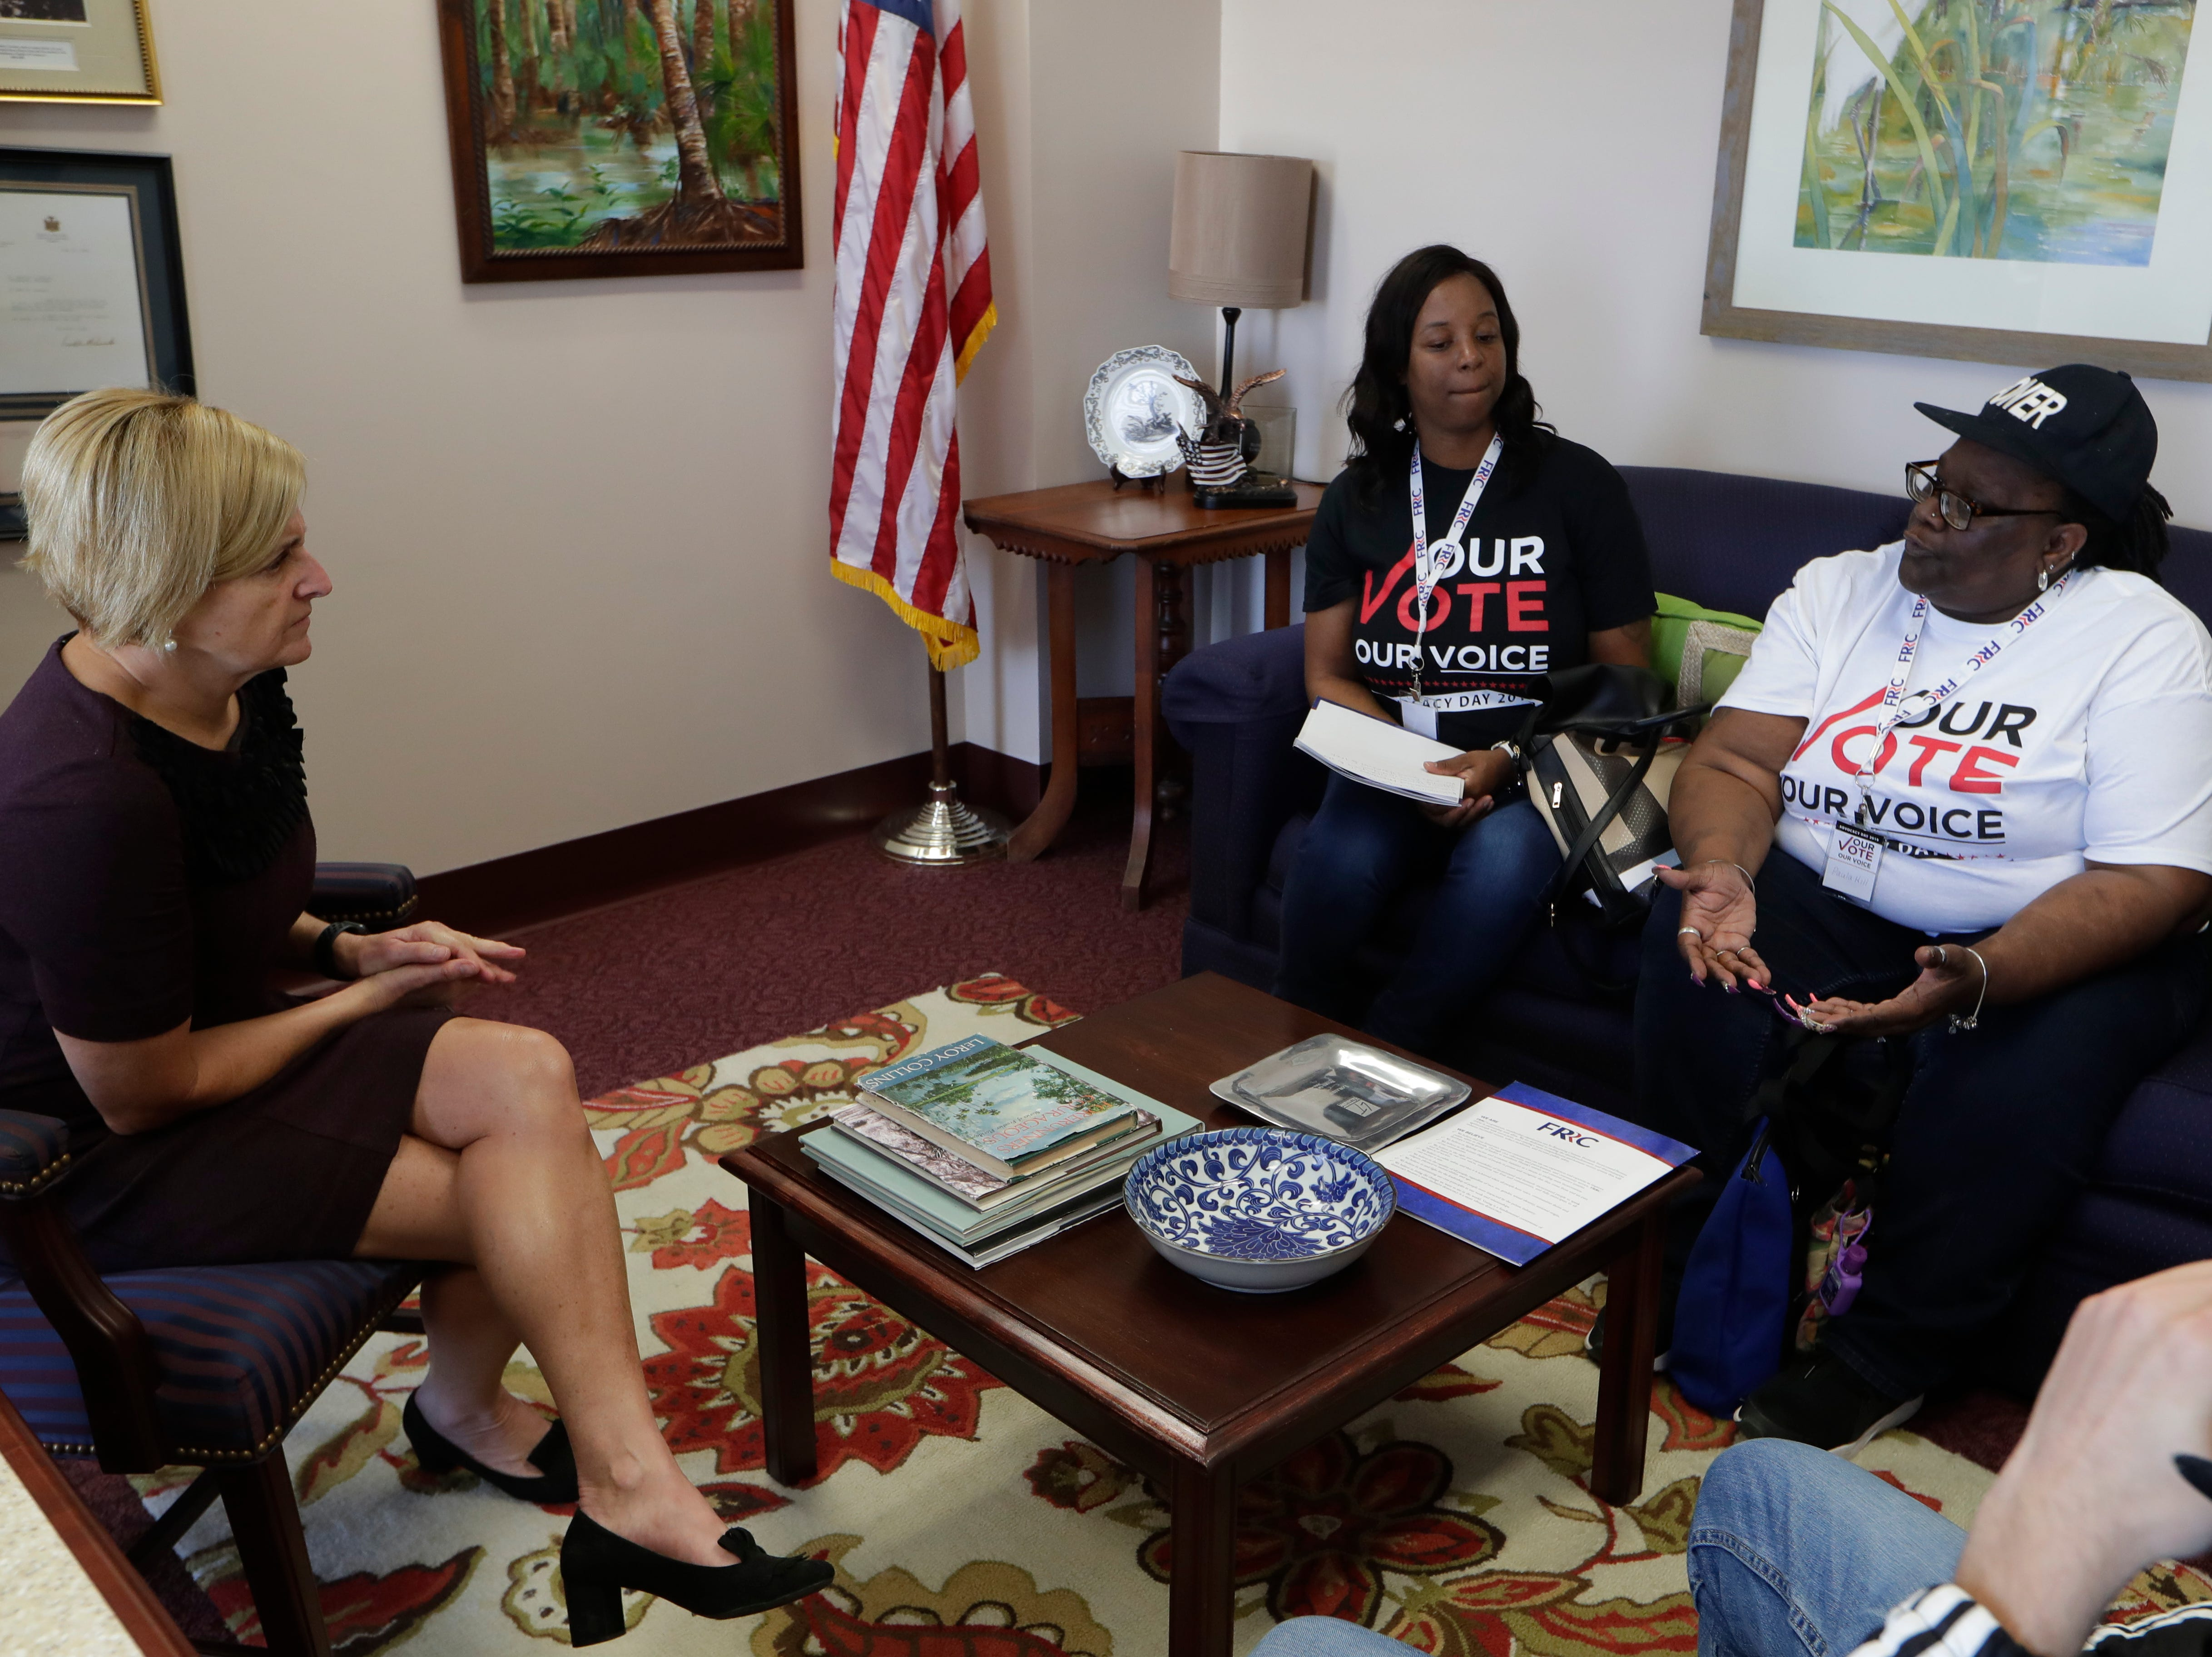 Latisha Berry, left, and Paula Hill, both of Tallahassee, talk with Rep. Loranne Ausley in her office Tuesday as over 500 Floridians with felony convictions whose voting rights were restored in November met with representatives at the Capitol during an Amendment 4 returning citizens advocacy day organized by the Florida Rights Restoration Coalition.